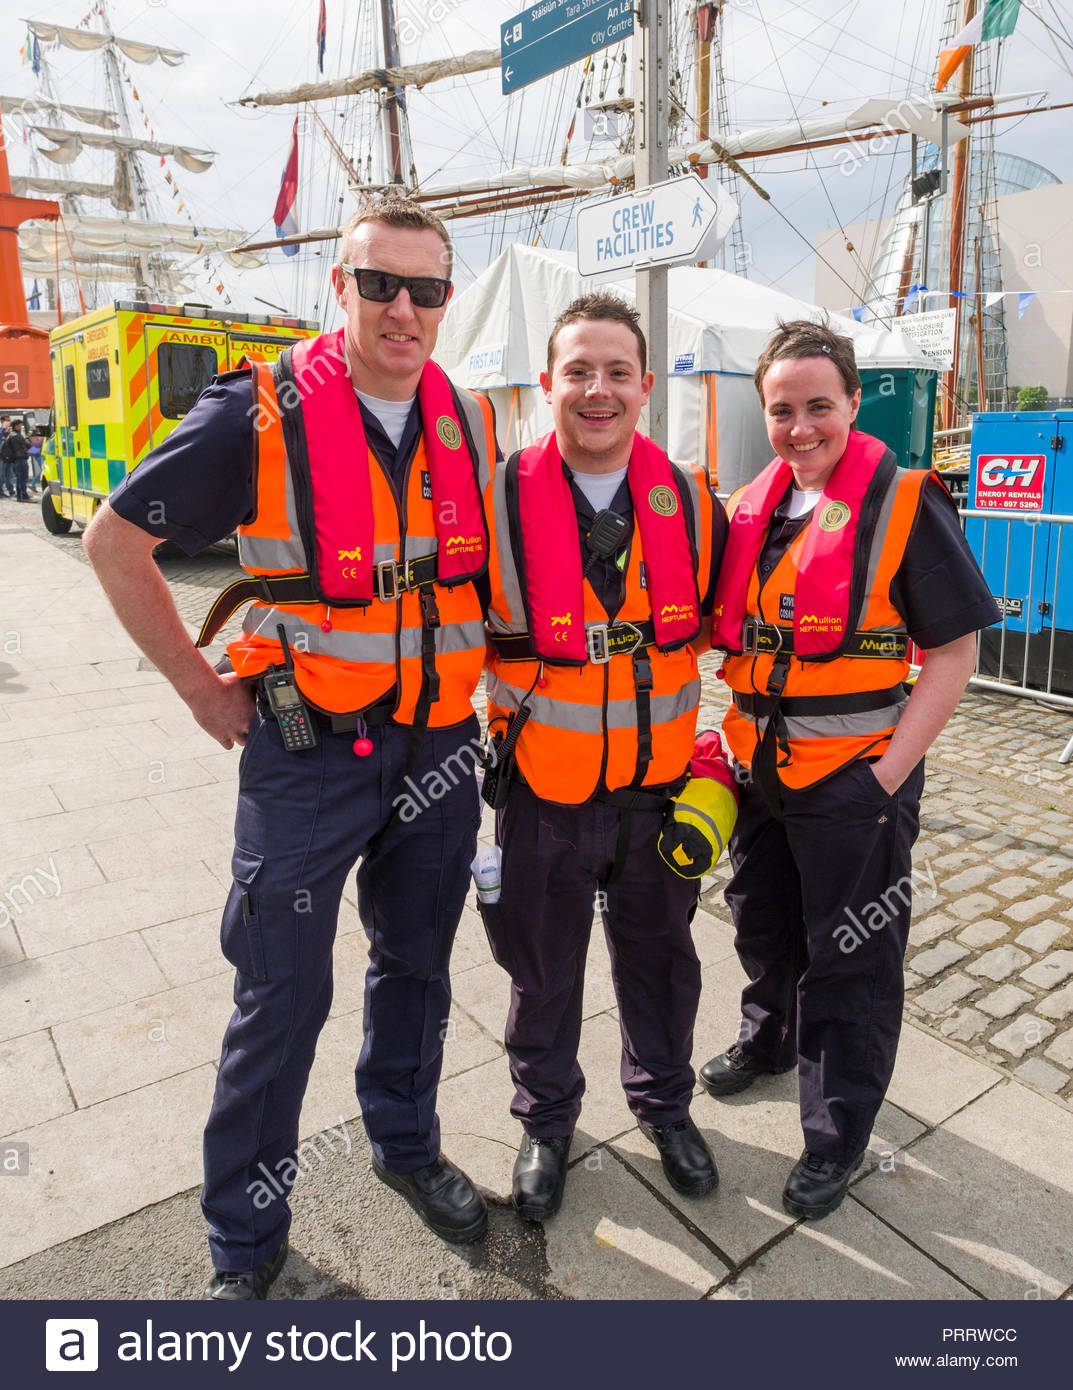 Irish Civil Defence volunteers wearing high visibility vest and inflatable personal flotation device during the 2018 Tall Ships Regatta, Sir John Roge - Stock Image